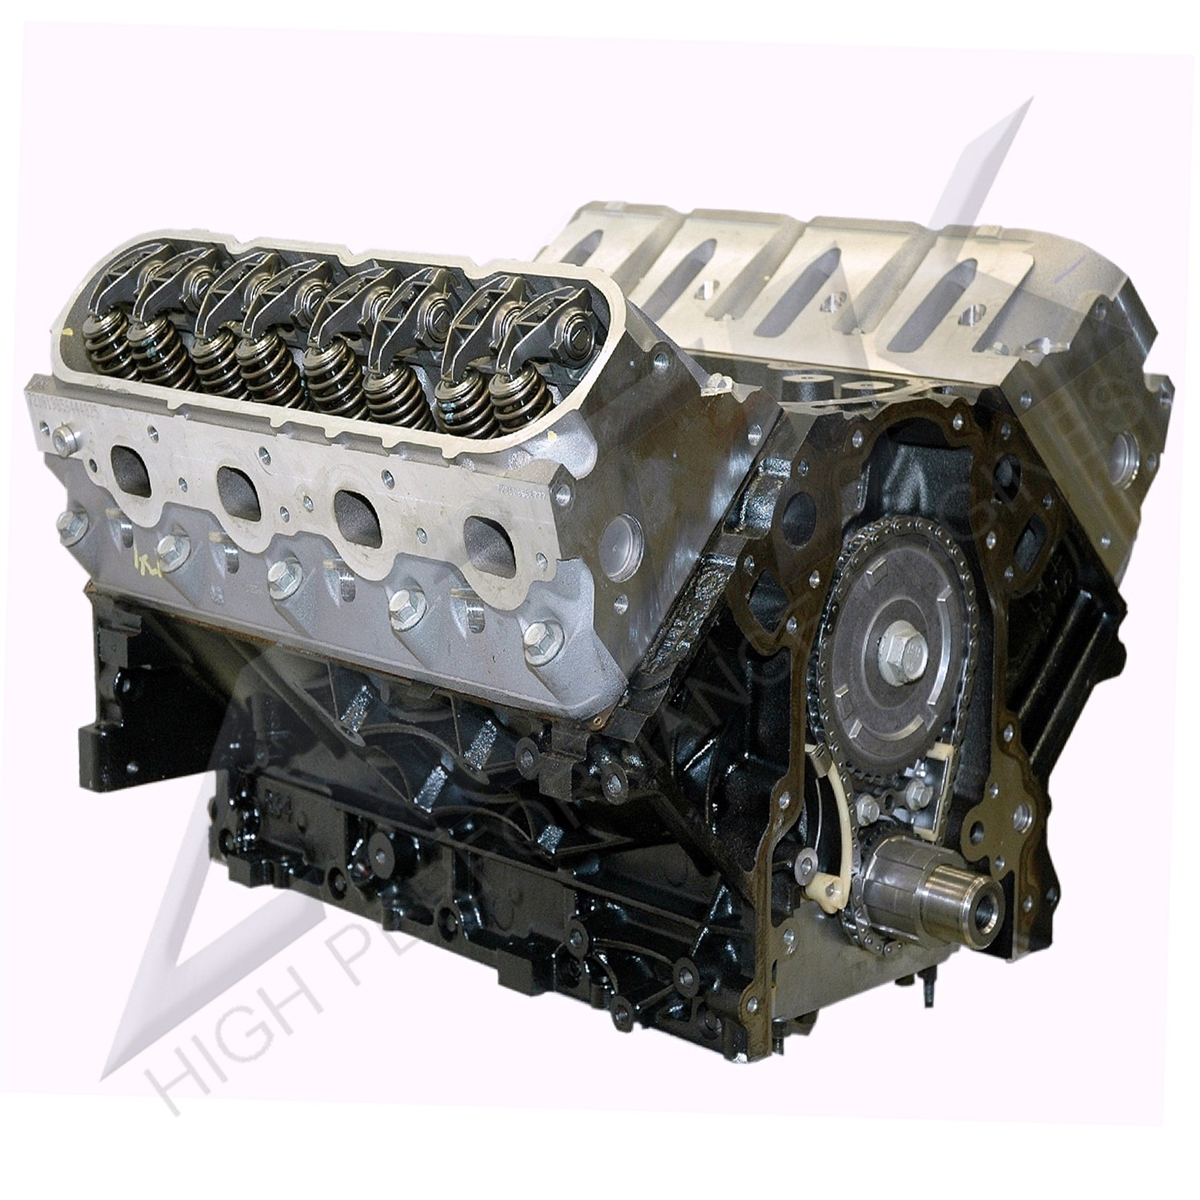 Atk Hp97 Chevy Lm7 5 3l 99 07 Truck Base Engine 385hp